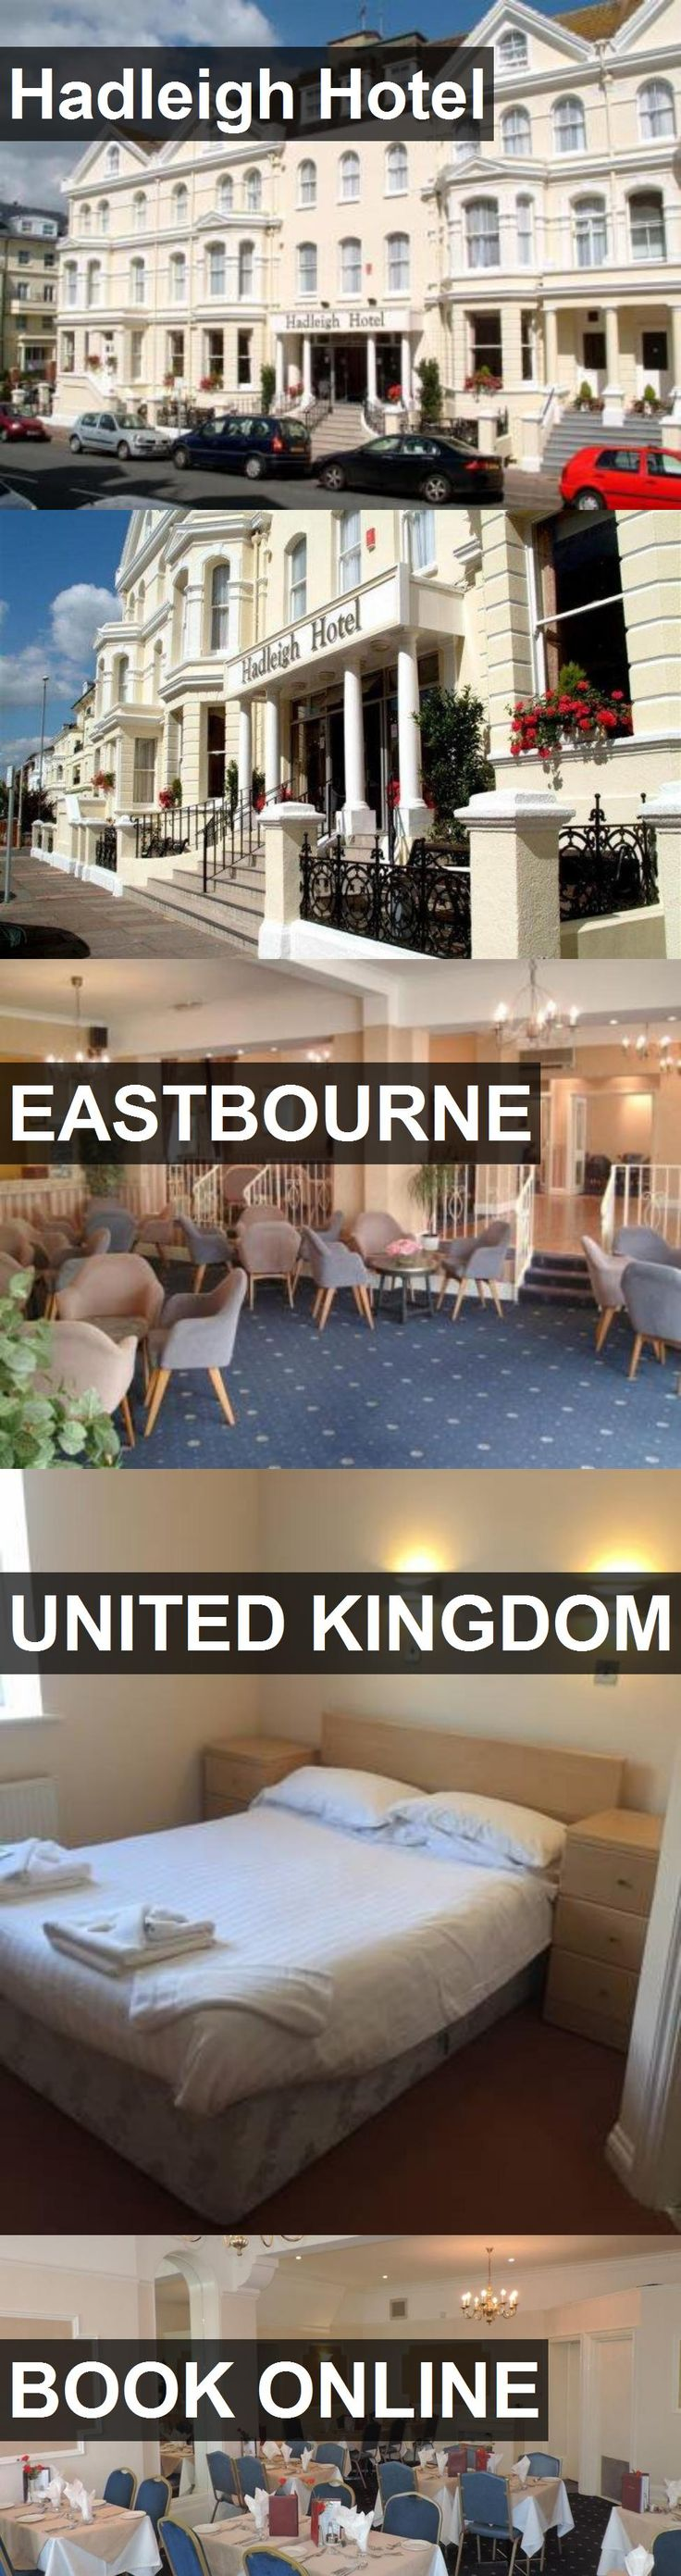 Hadleigh Hotel in Eastbourne, United Kingdom. For more information, photos, reviews and best prices please follow the link. #UnitedKingdom #Eastbourne #travel #vacation #hotel